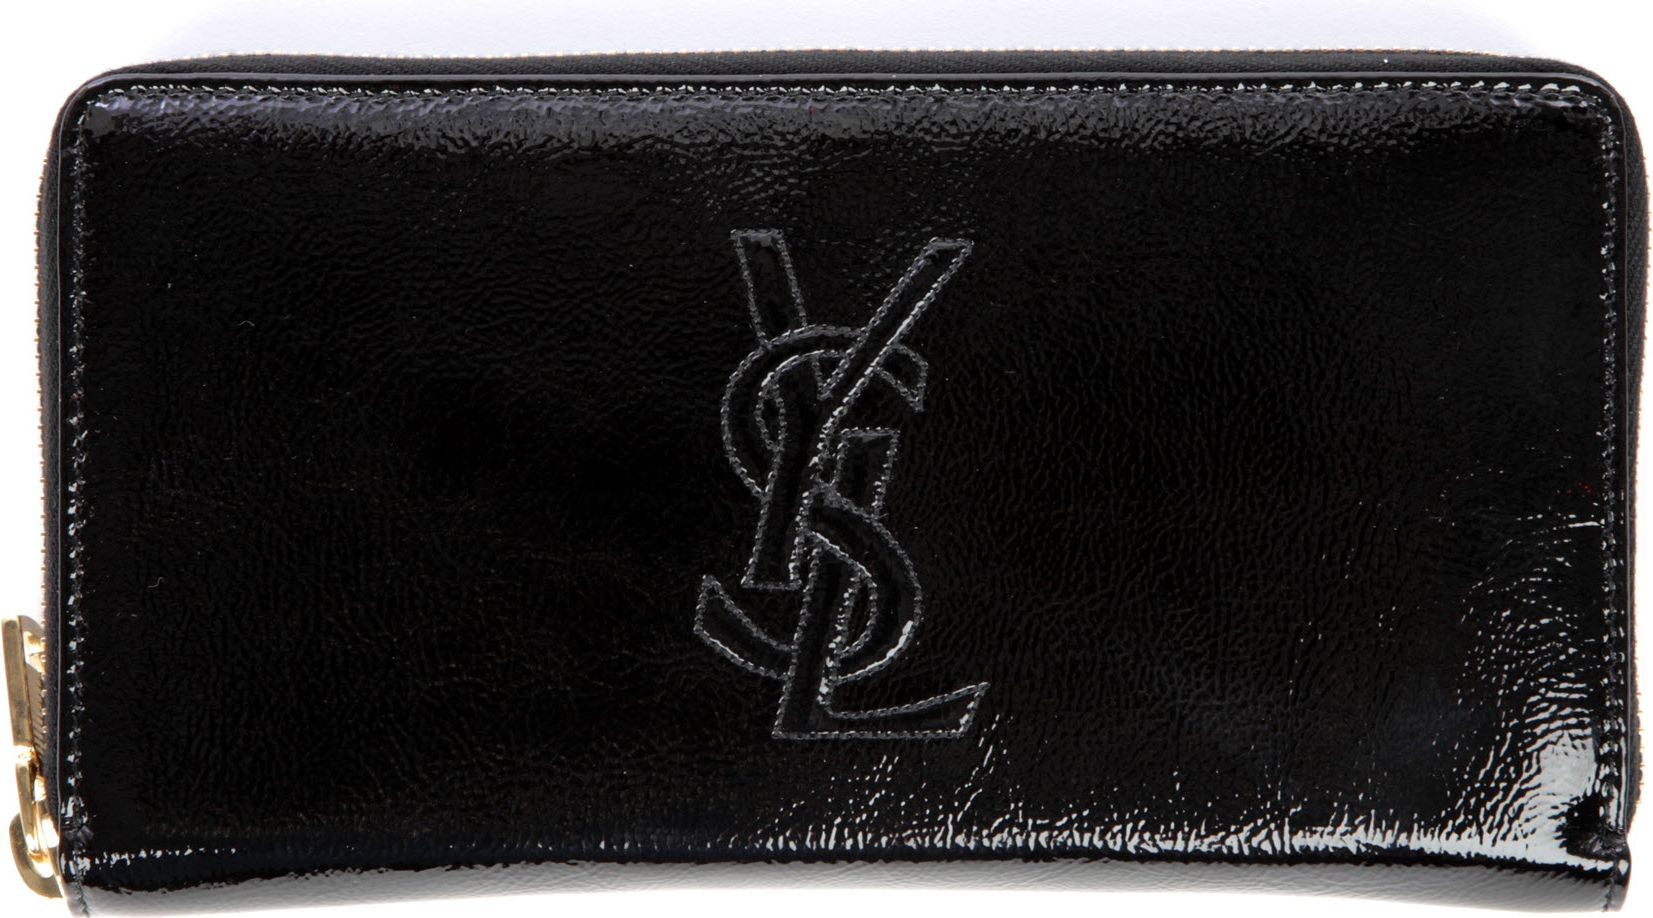 huge leather handbags - Saint laurent Belle De Jour Zip Around Wallet in Black | Lyst